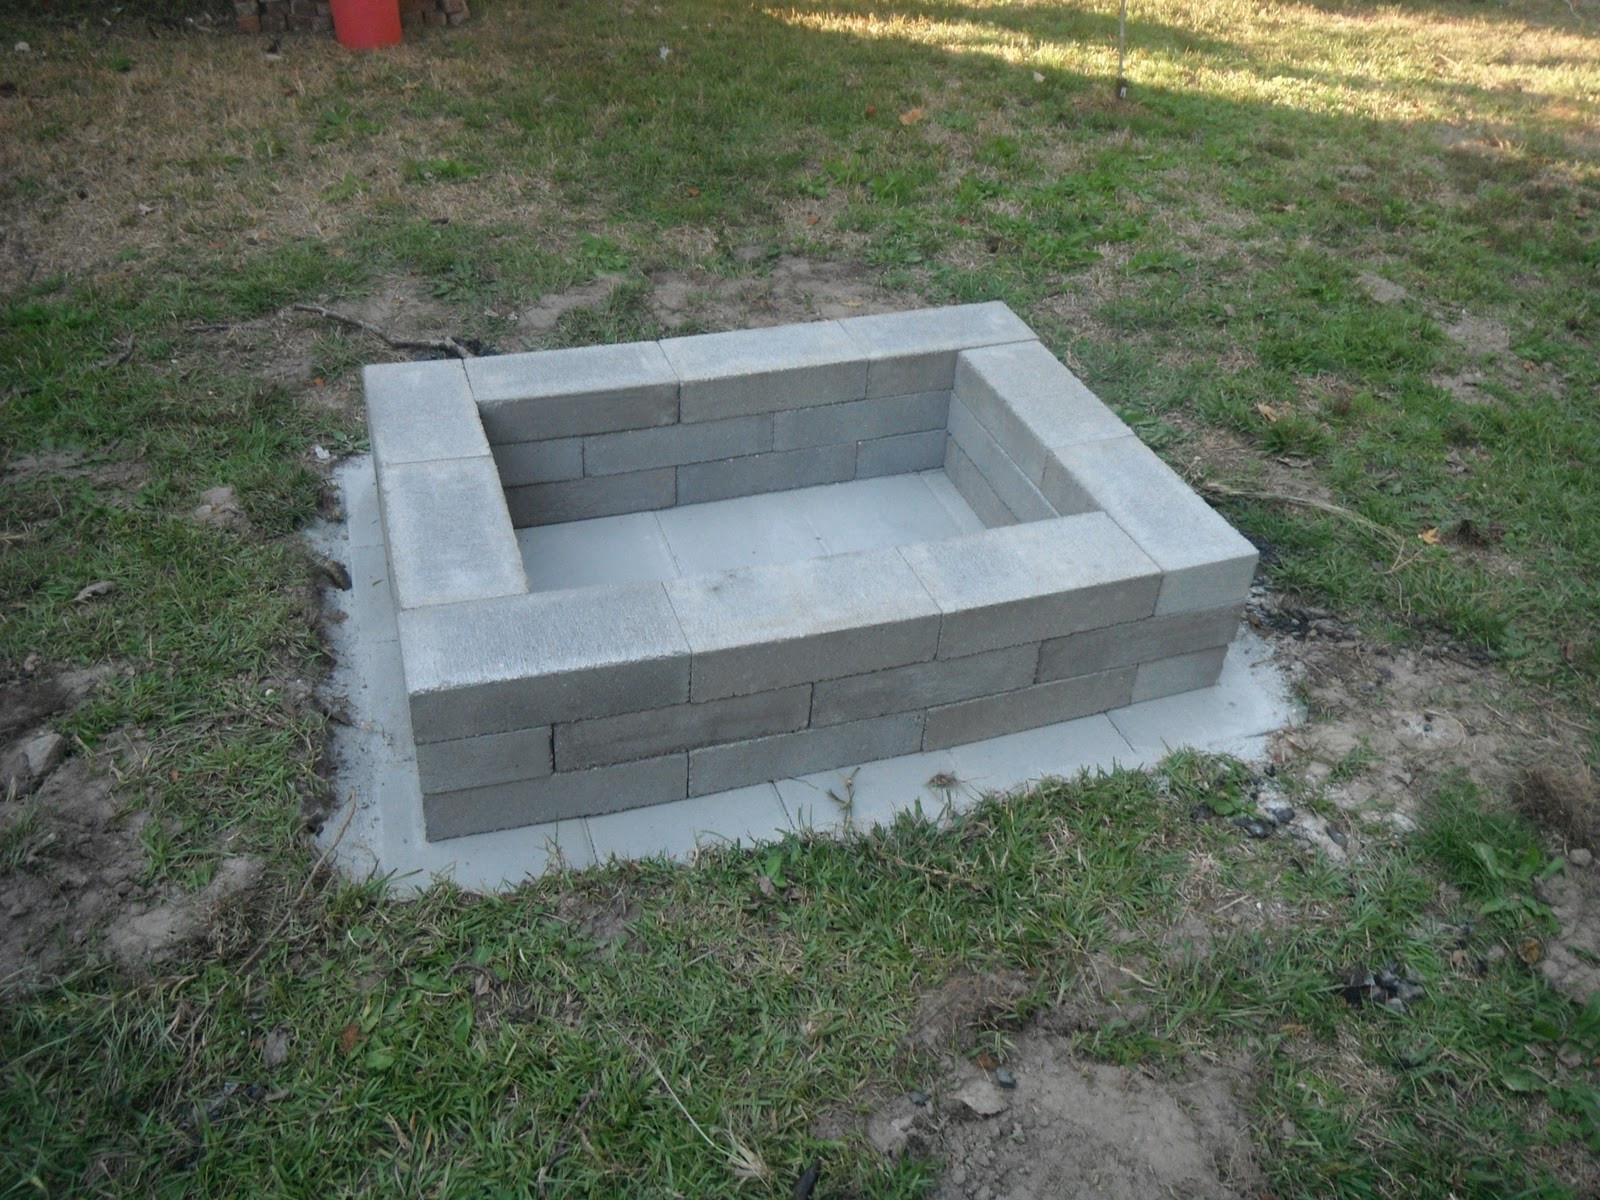 Best ideas about DIY Square Fire Pit . Save or Pin Deals Steals and Heels what happens when husbands are Now.